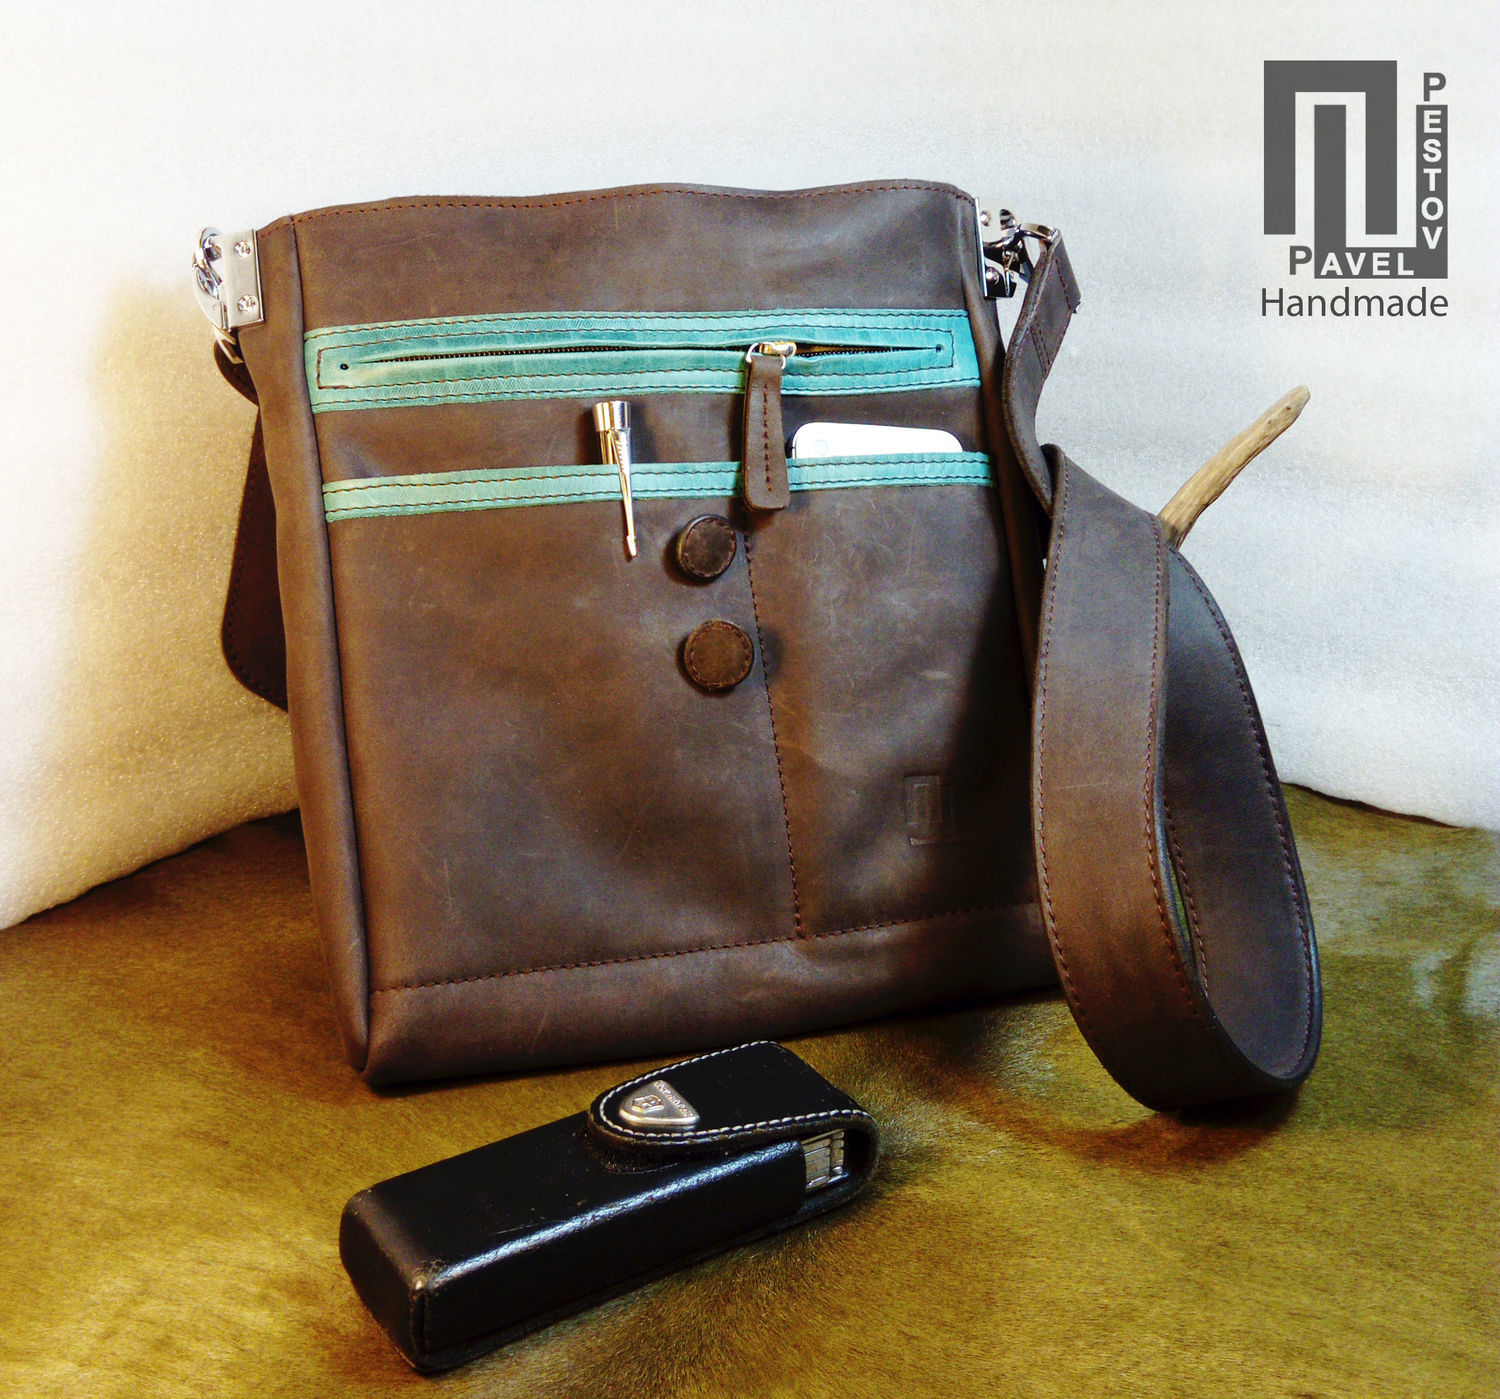 ded1510428e5 Men s Bags handmade. Bag mens  Envelope  button. Pavel Pestov - Handmade.